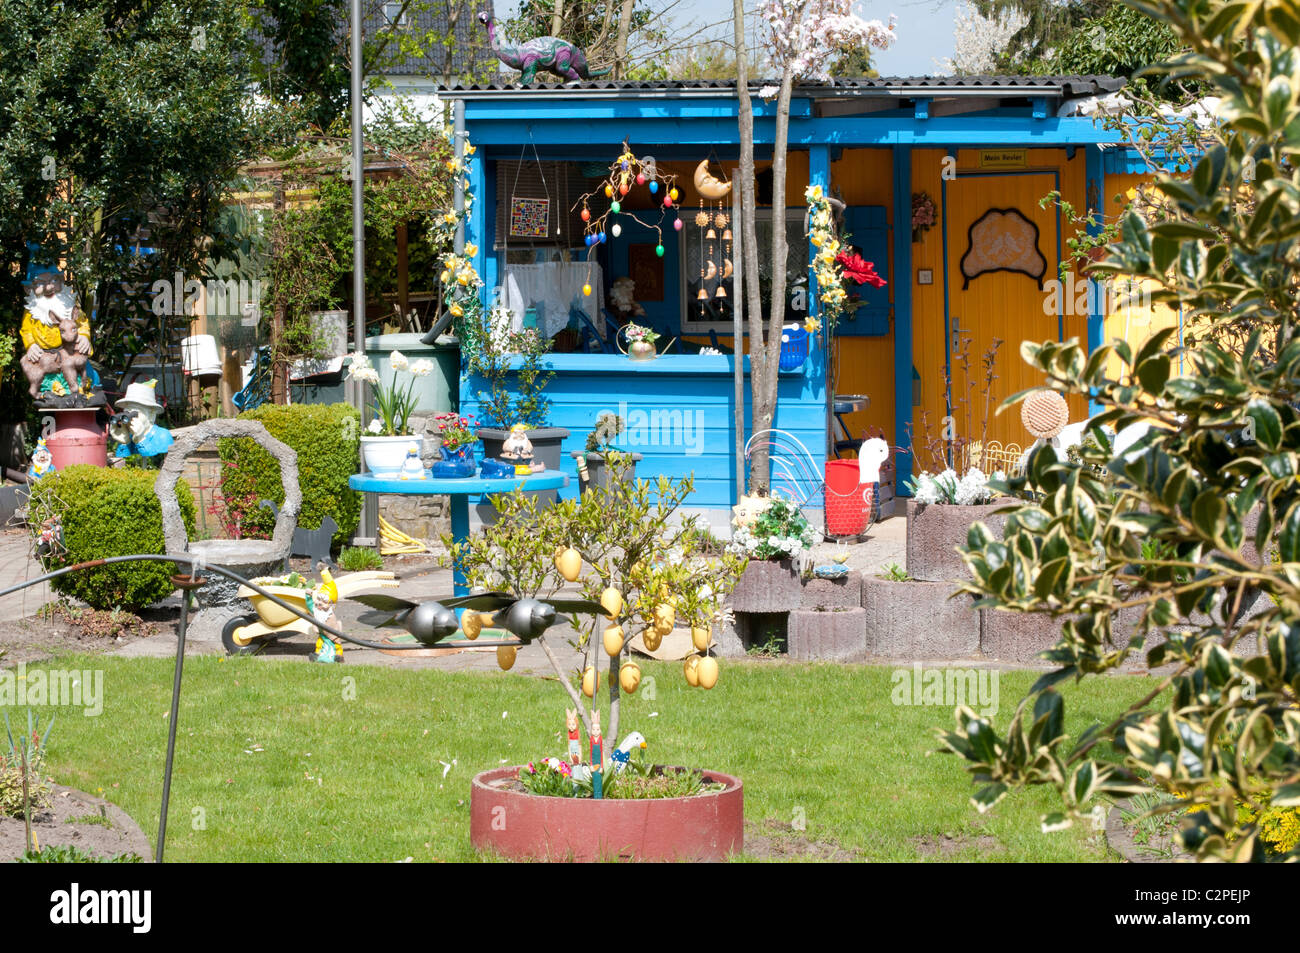 Allotment garden, Schrebergarten in Hamm, North Rhine-Westphalia, Germany - Stock Image